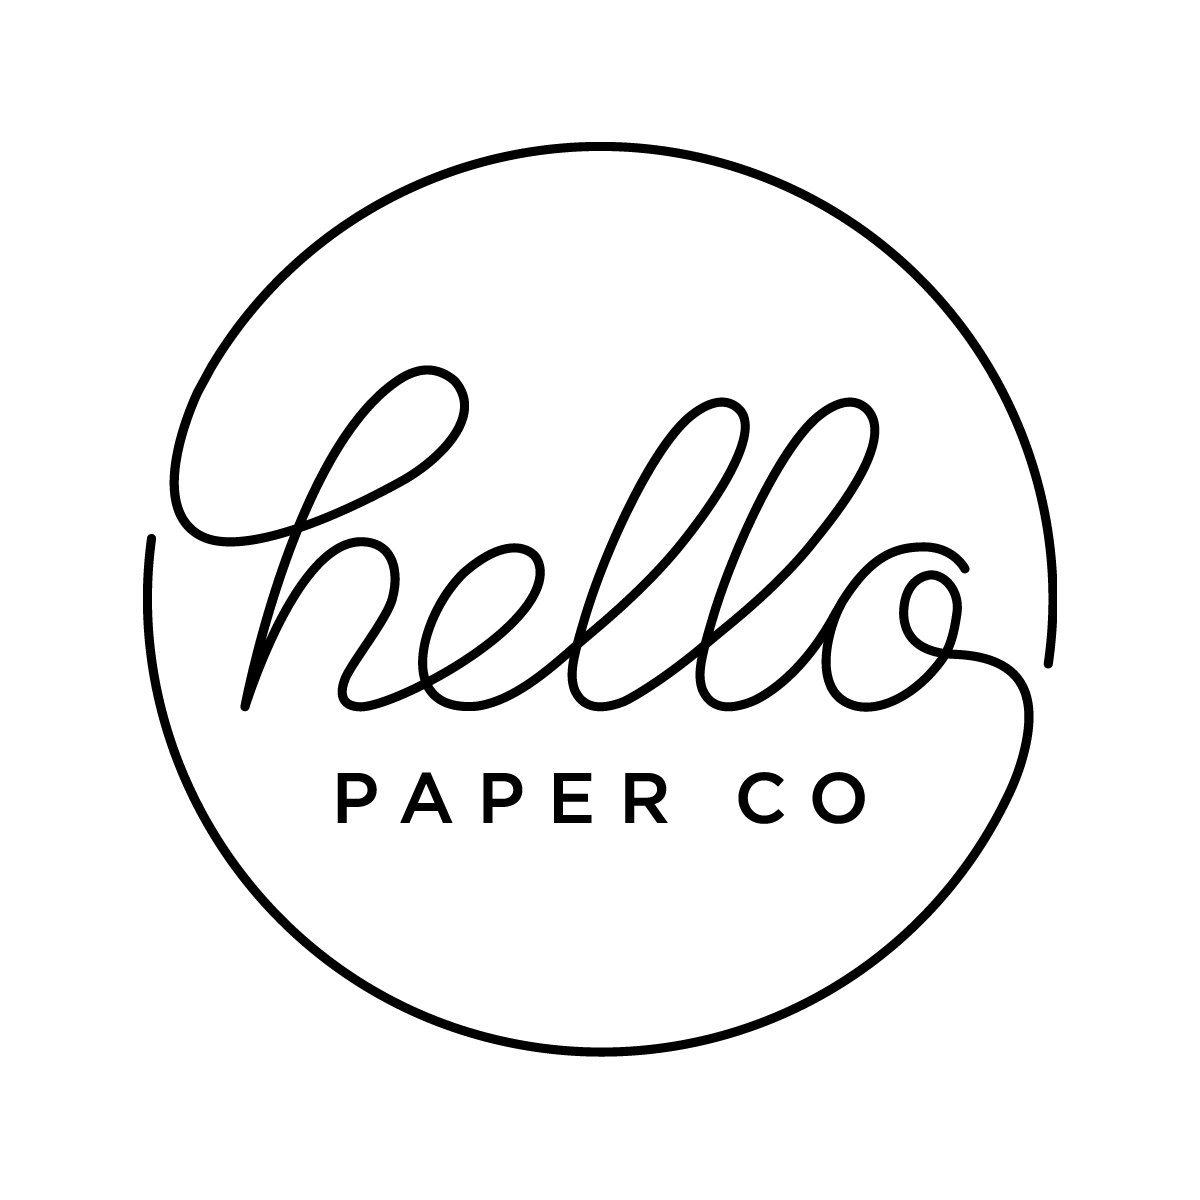 HelloPaperCo.png